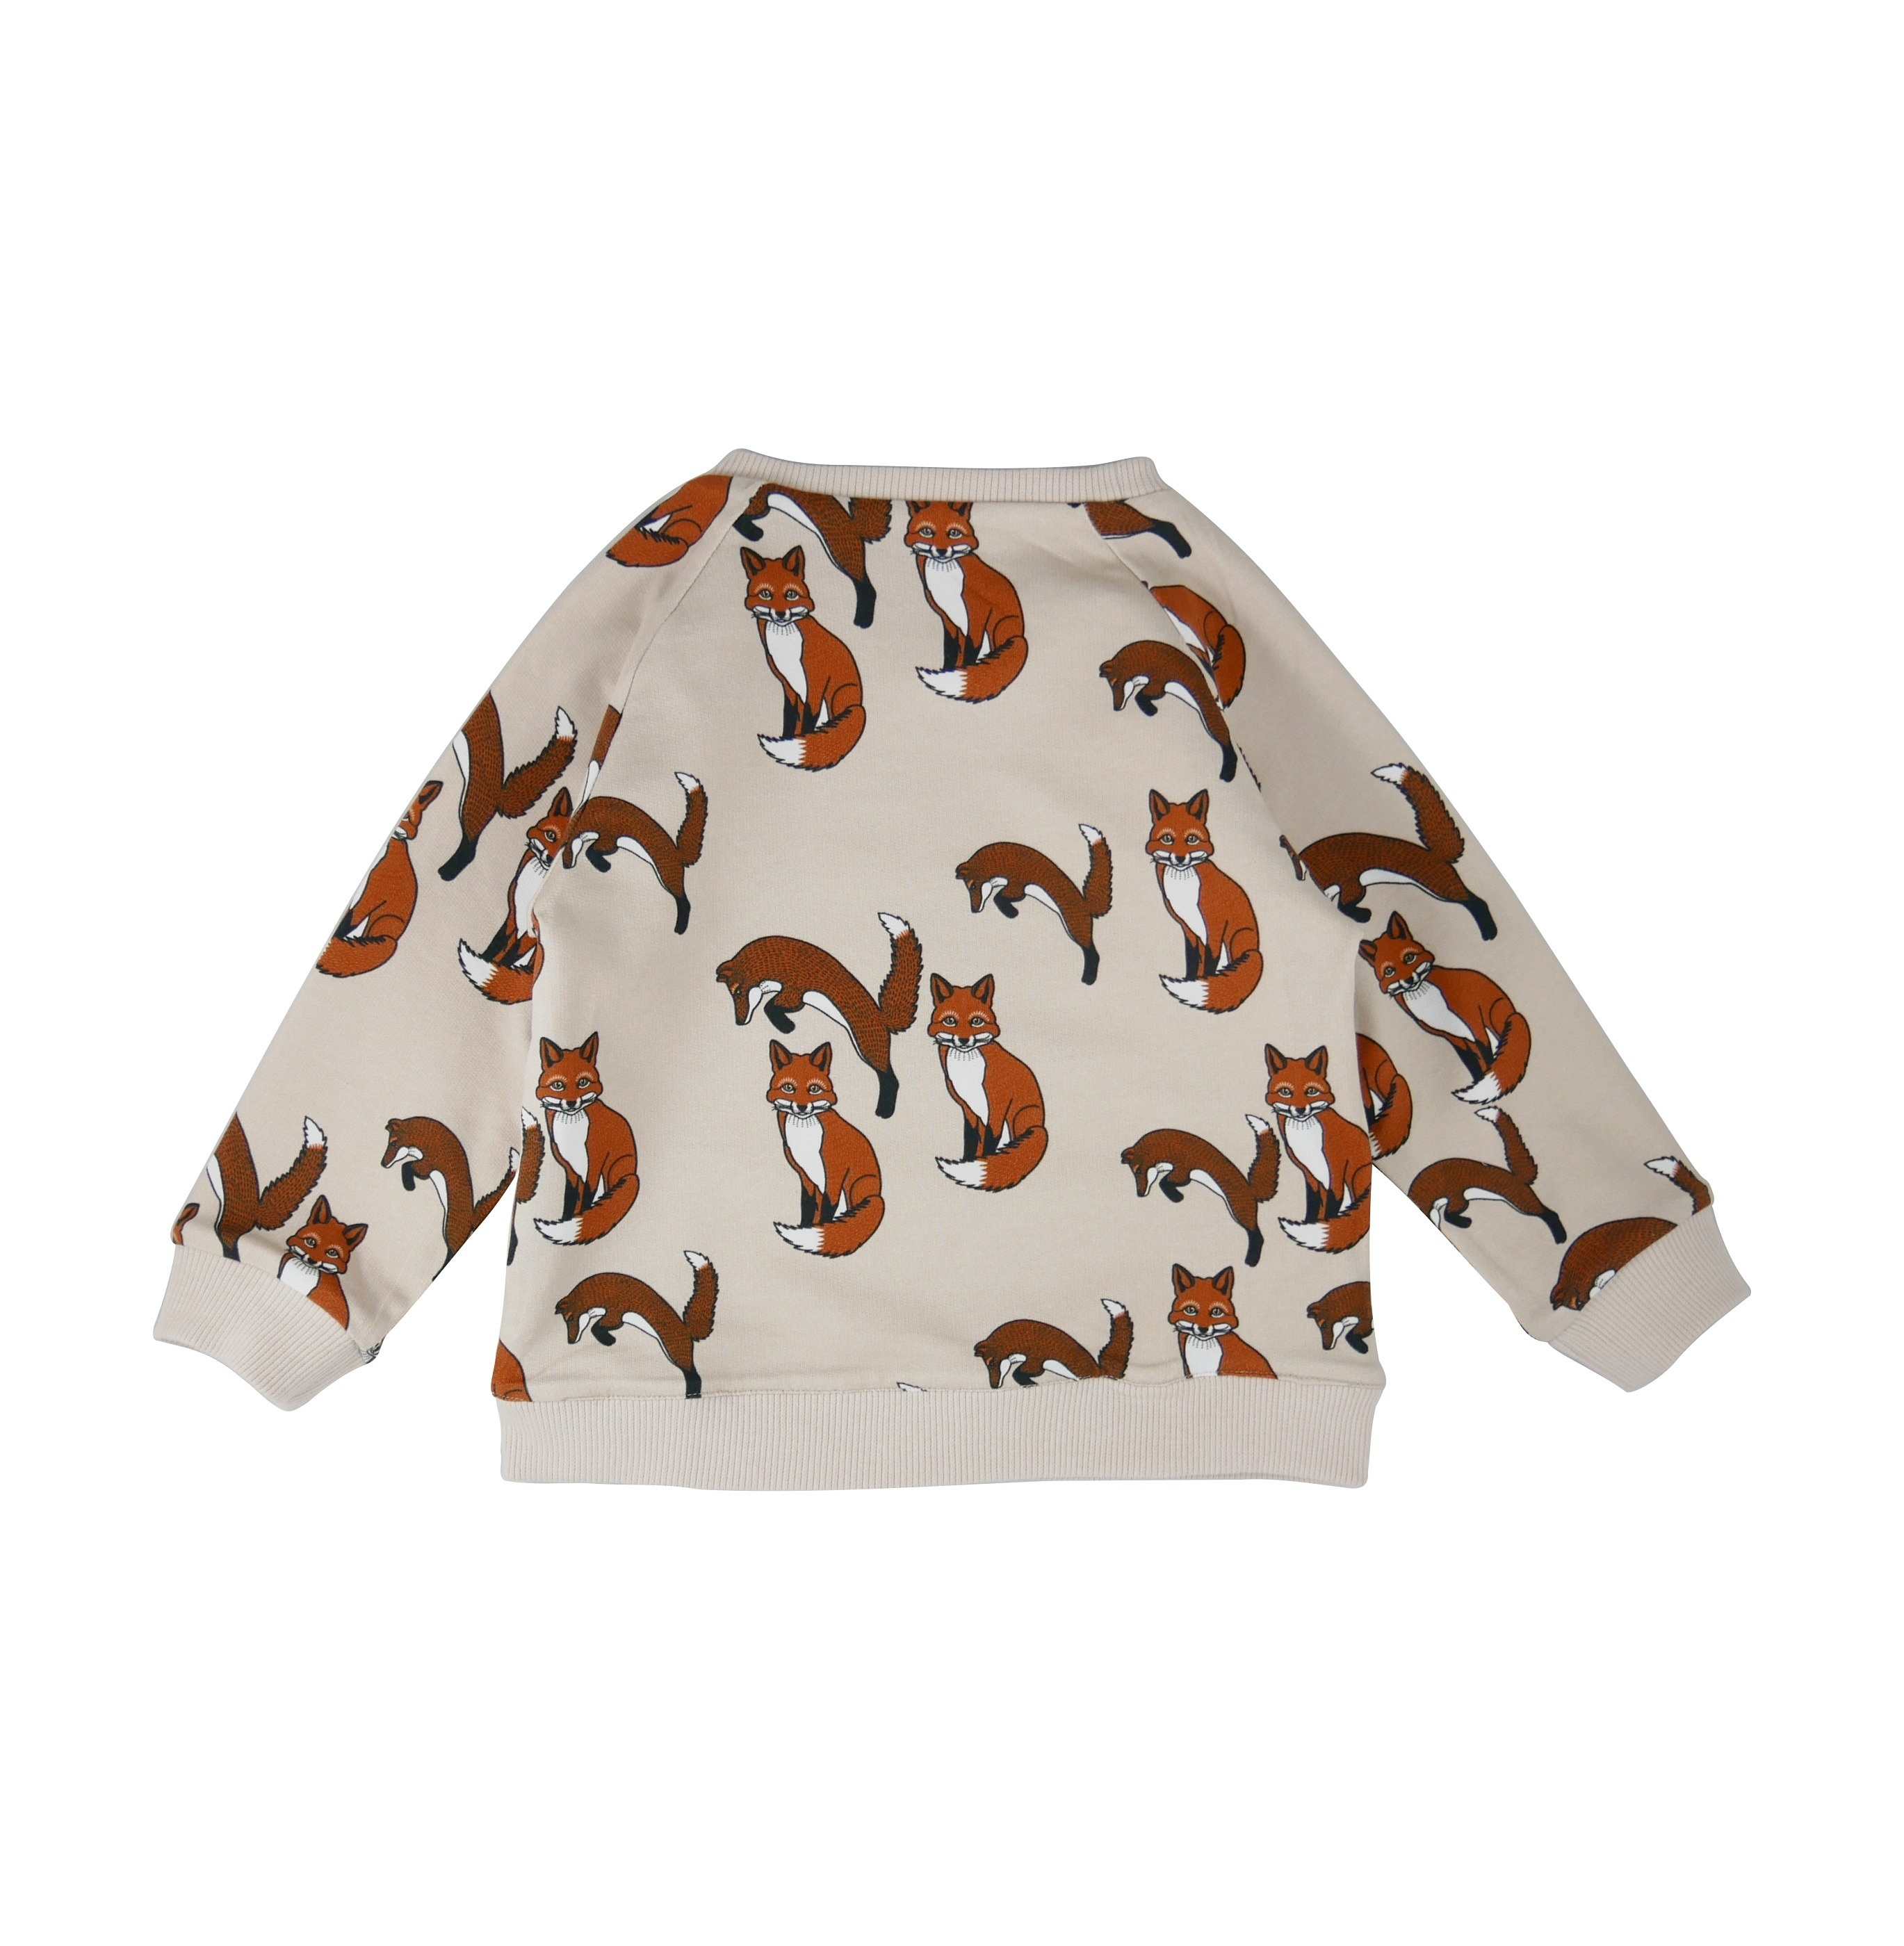 Reversible sweatshirt Fox AOP side back